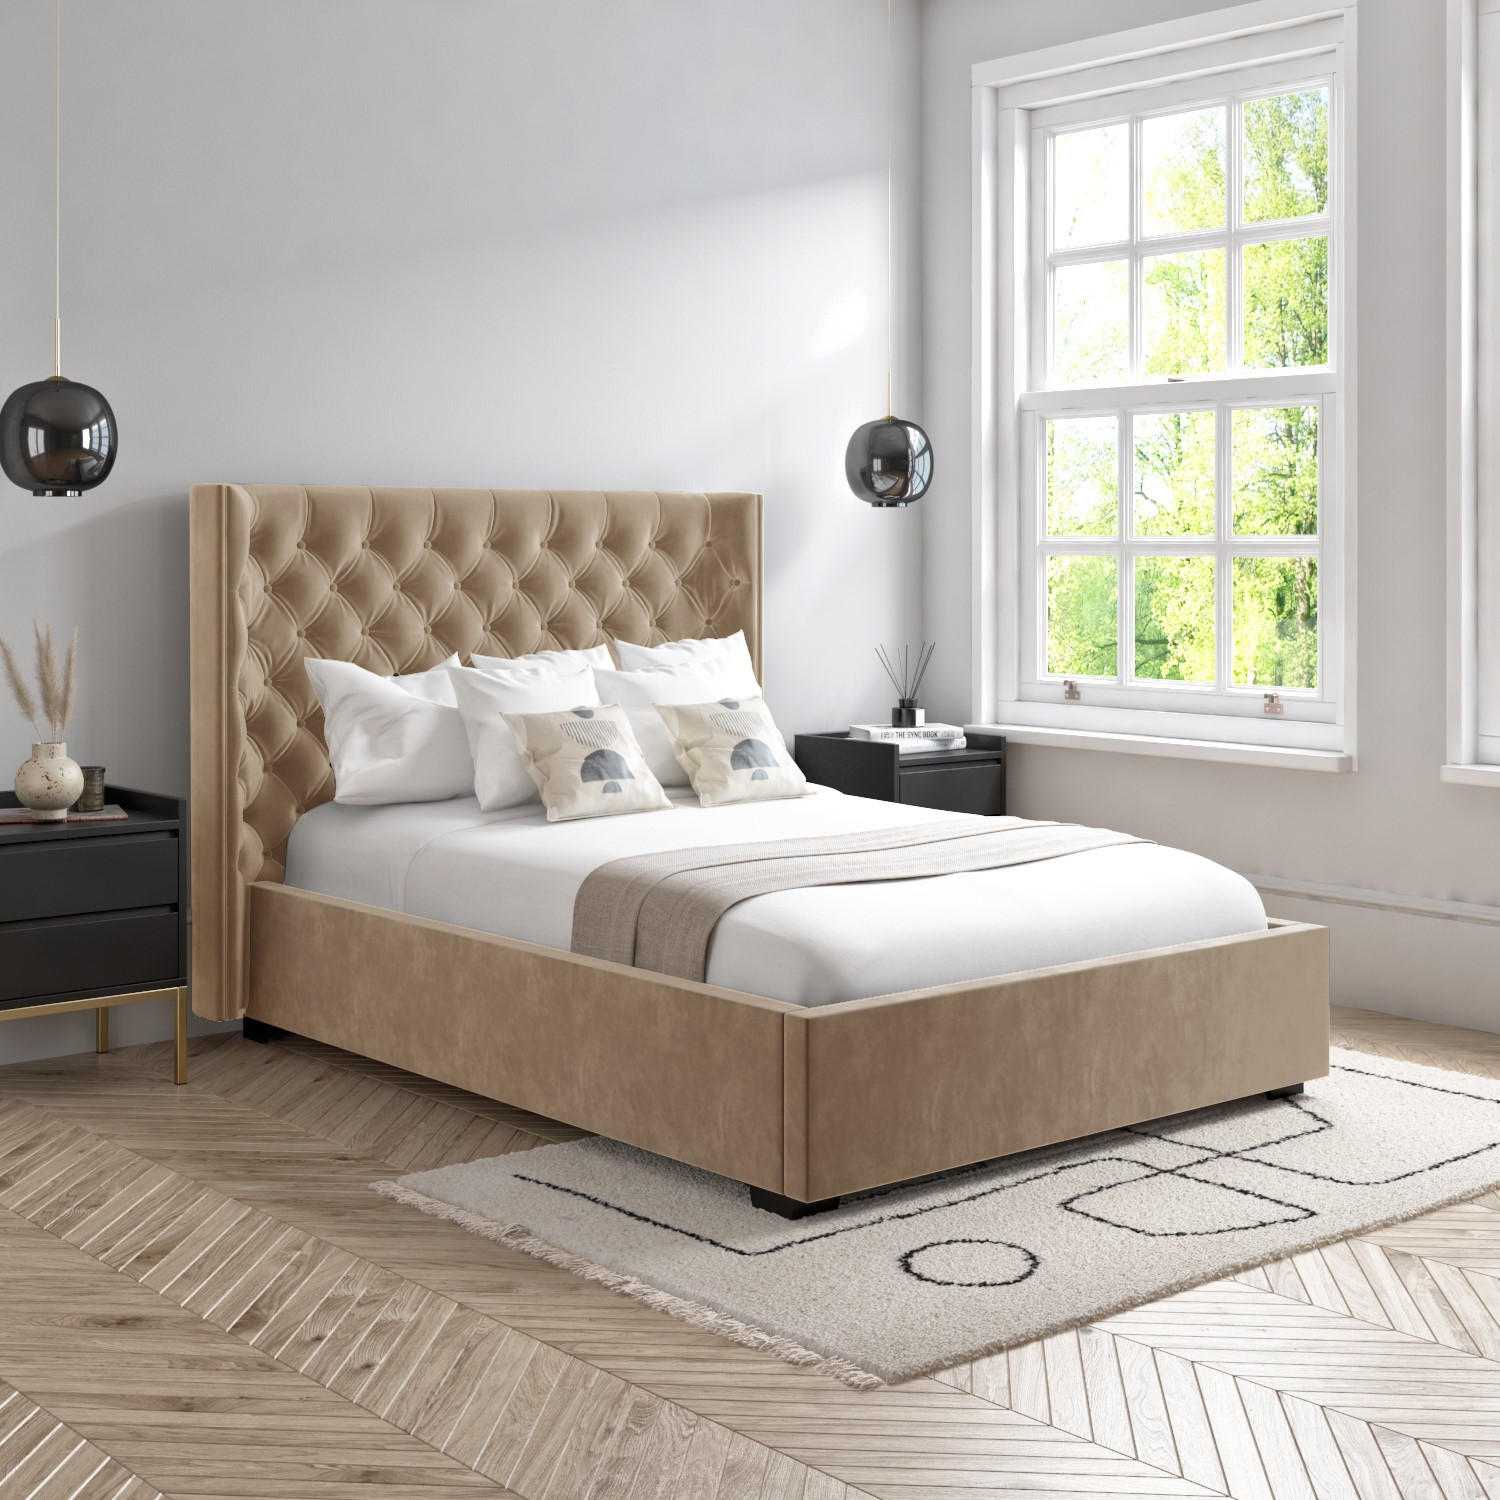 Milania King Size Ottoman Bed In Light Beige Velvet With Curved Headboard Maa006 Ebay